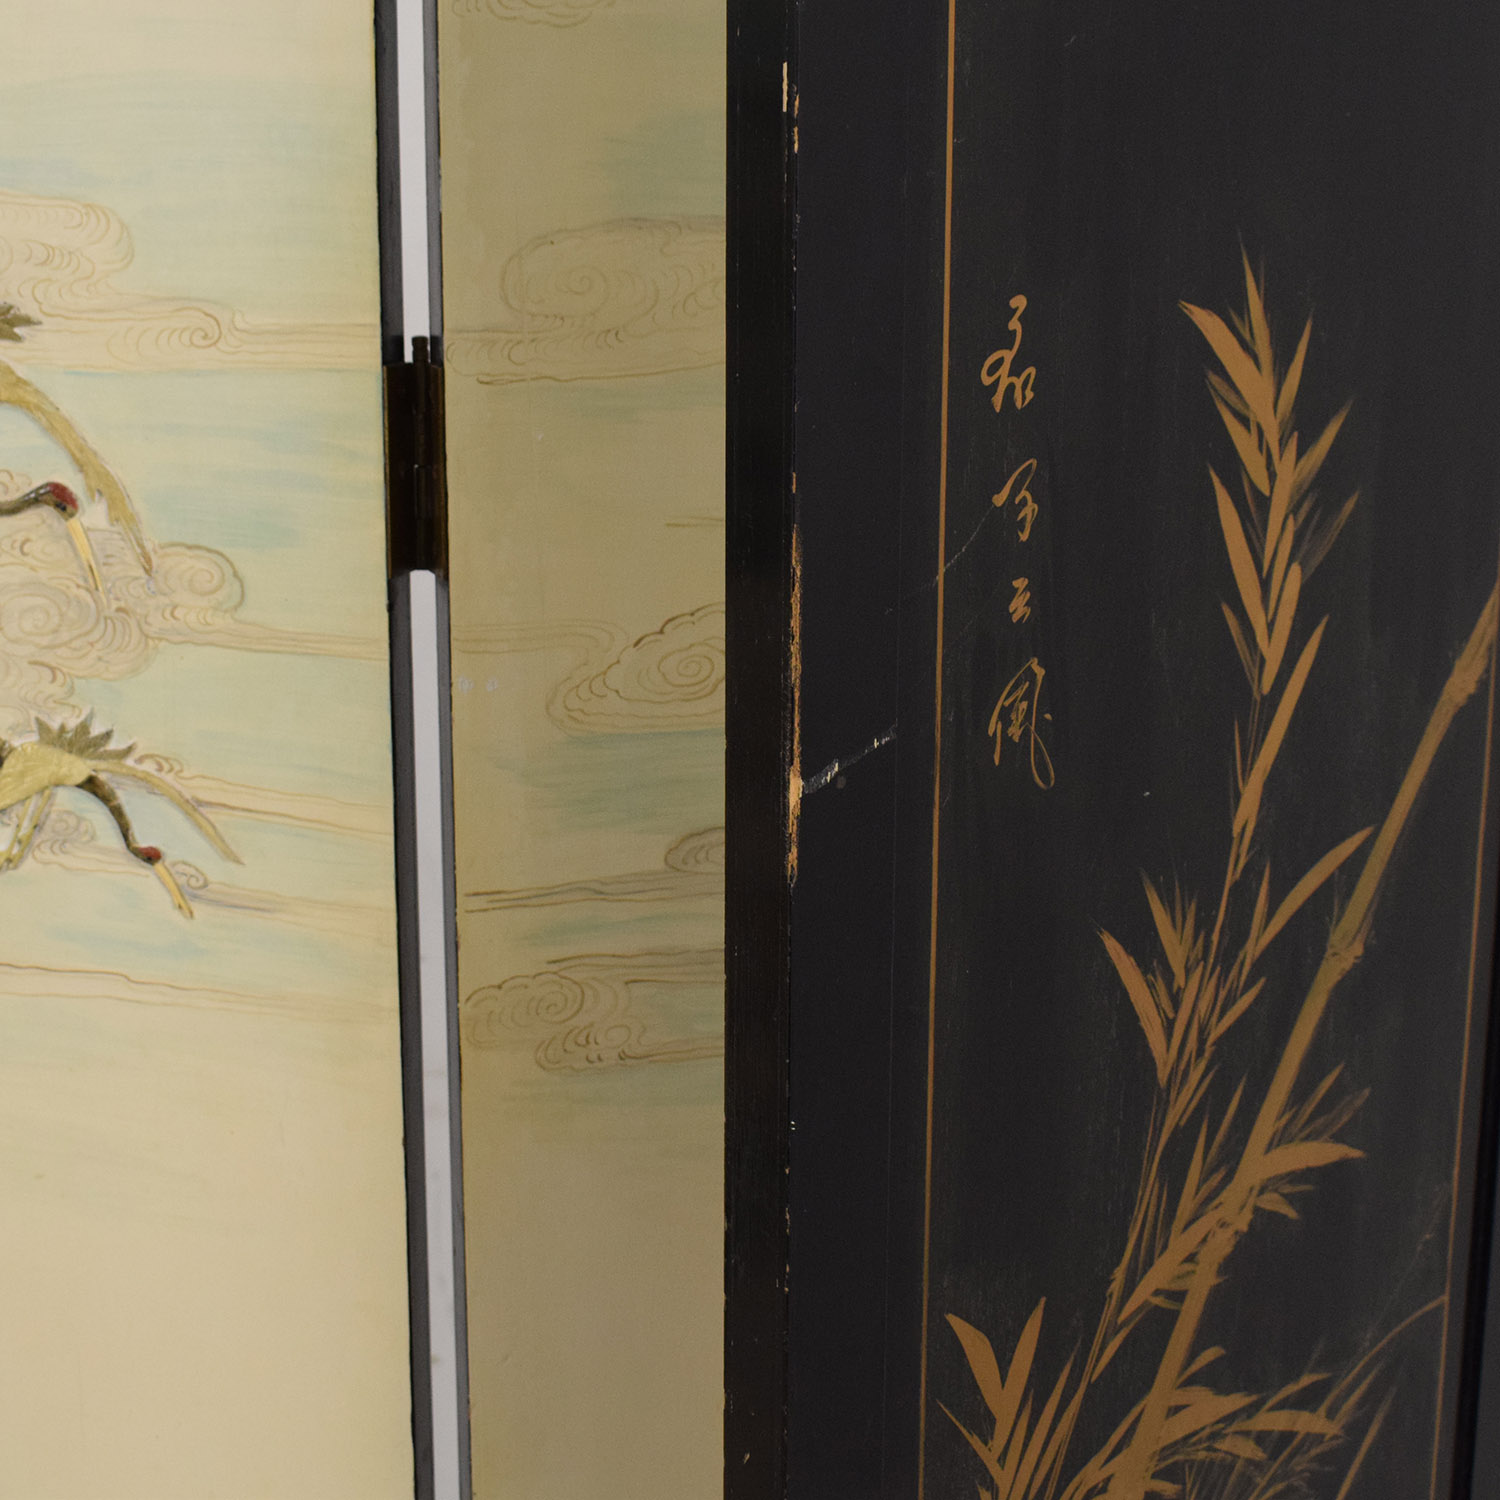 Chinese Style Panel Screen Divider / Dividers